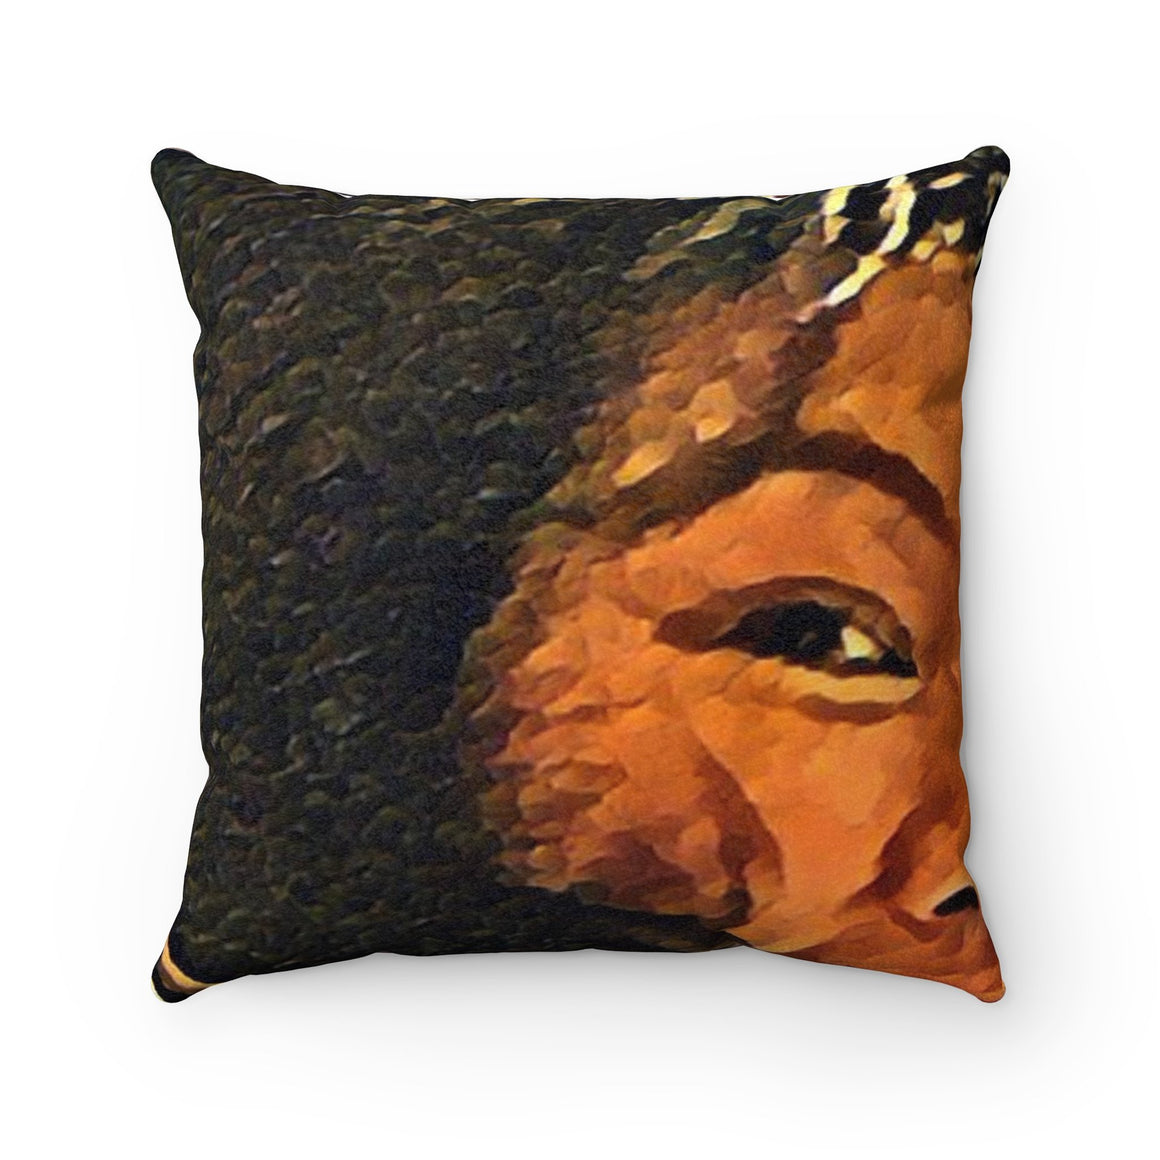 Levi Thang Vintage Face Design G Faux Suede Square Pillow Case